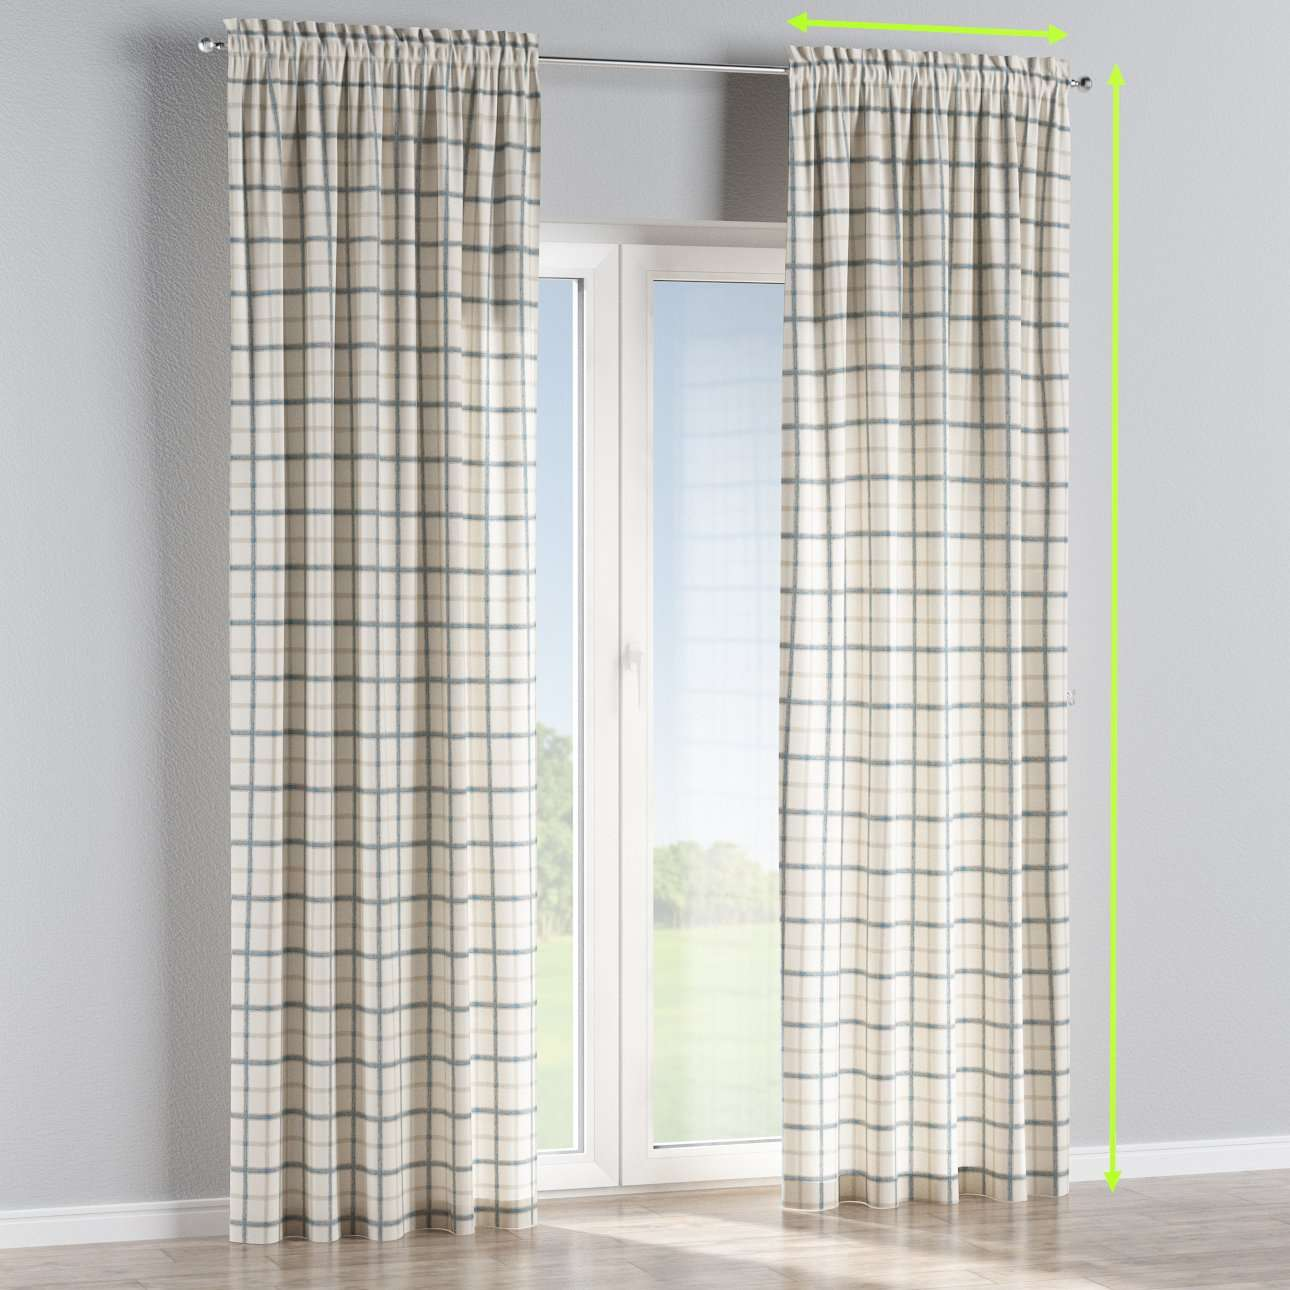 Slot and frill lined curtains in collection Avinon, fabric: 131-66